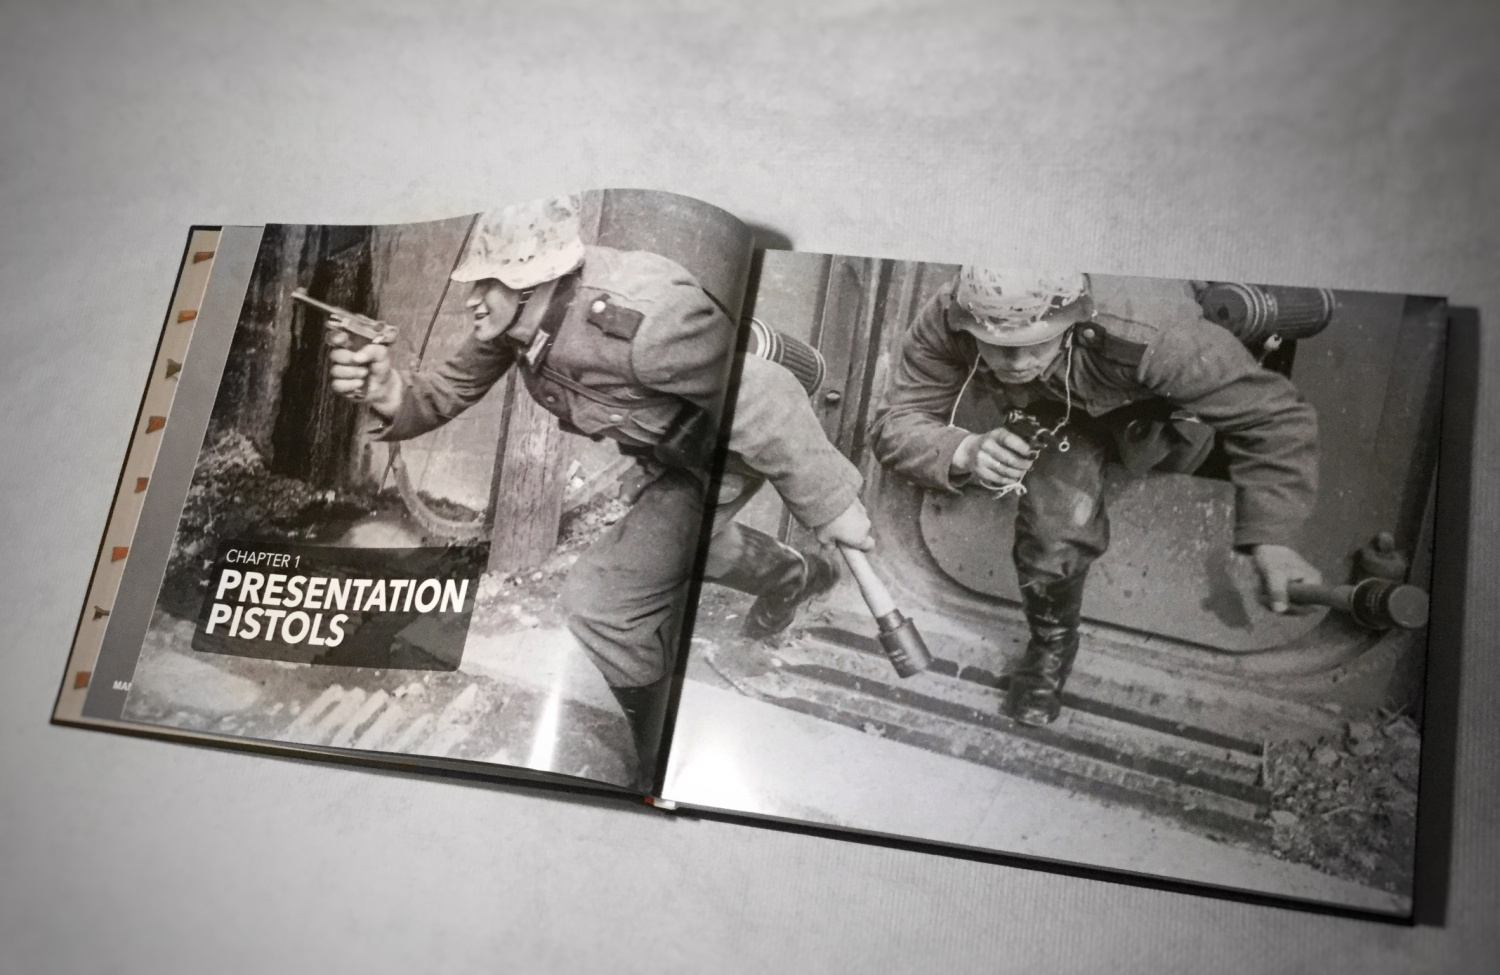 """Every chapter starts with a historical photo depicting weapons """"in action"""""""